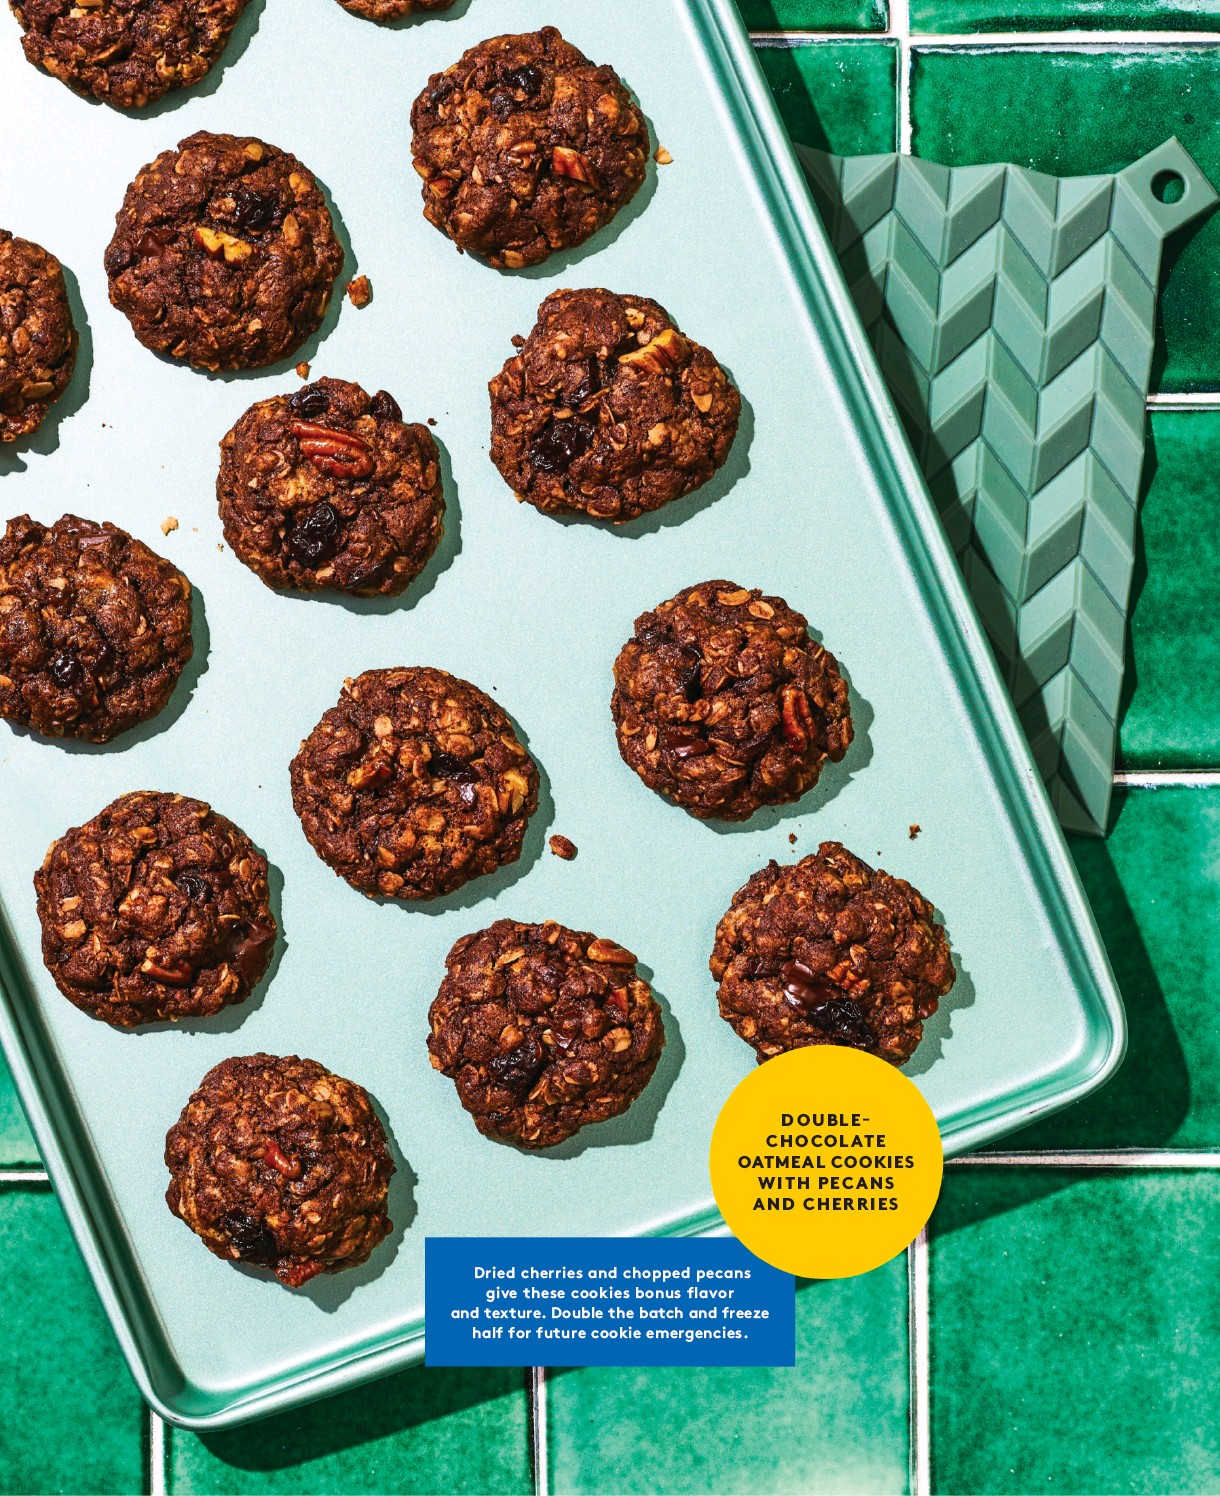 ??  ?? DOUBLECHOCOLATE OATMEAL COOKIES WITH PECANS AND CHERRIES